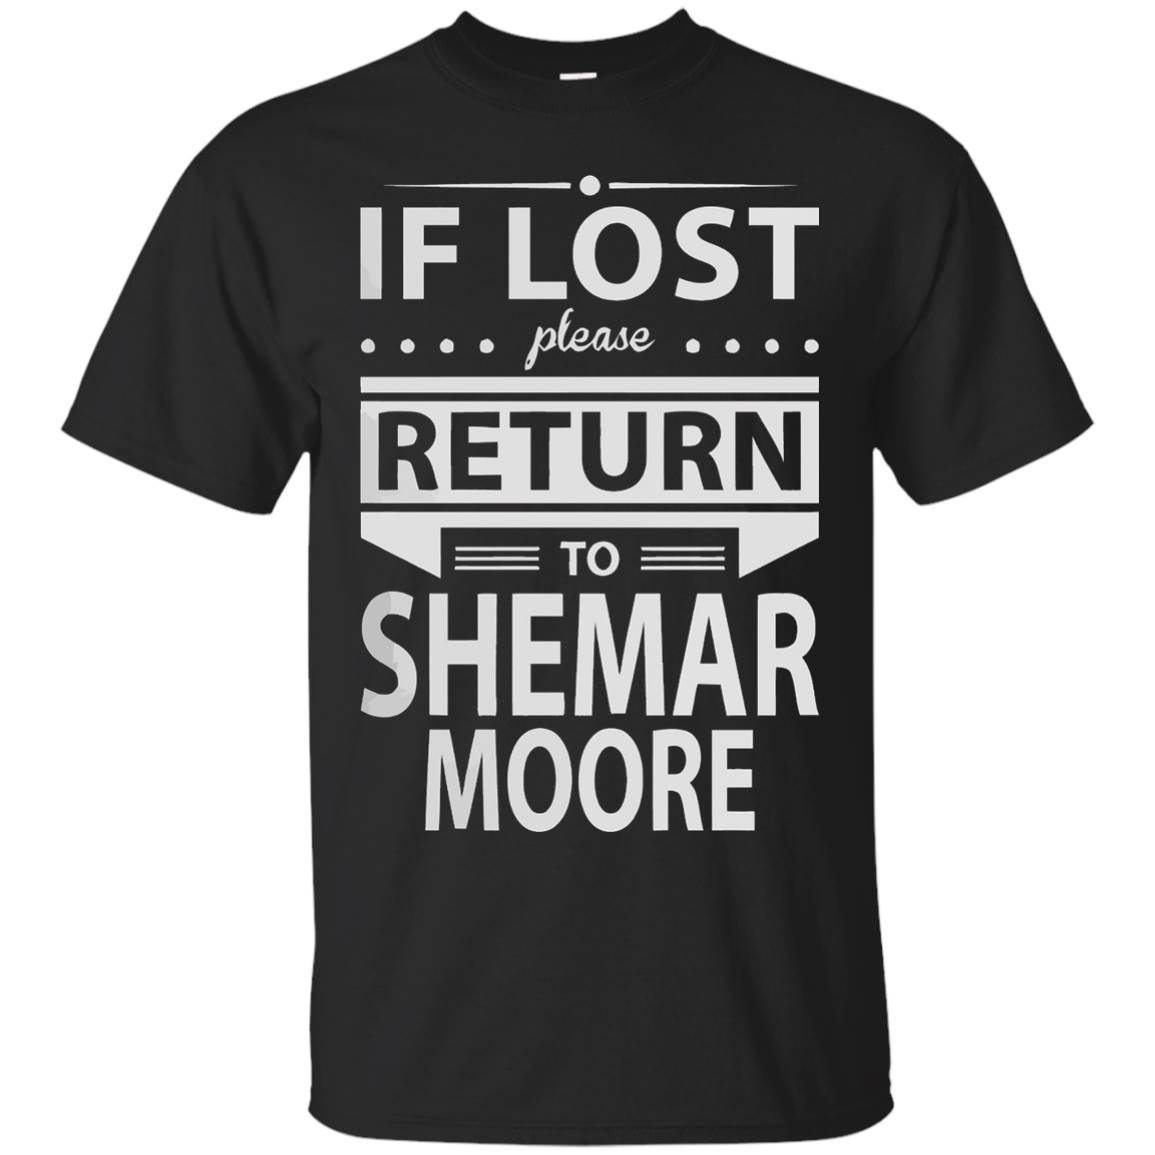 If Lost Please Return To Shemar Moore shirt – T-Shirt